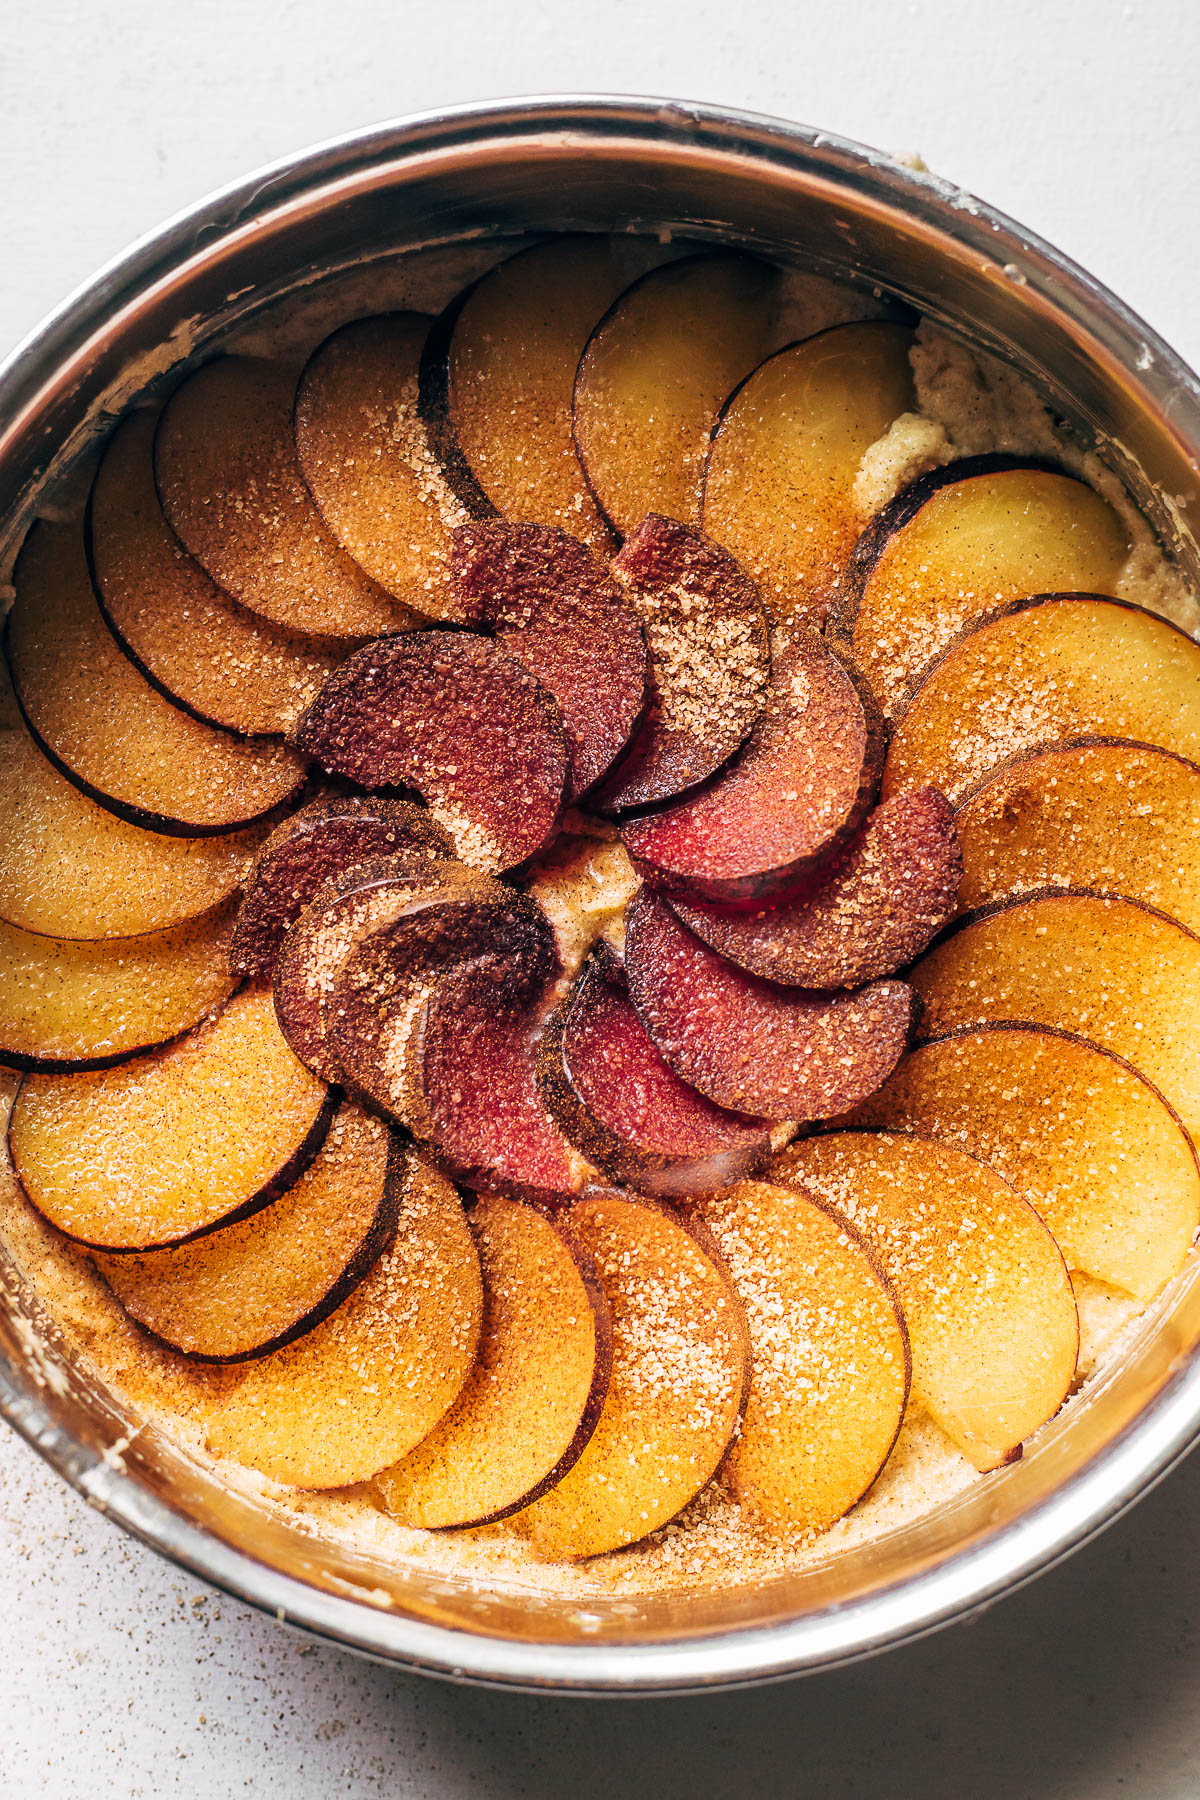 Plums sprinkled with cinnamon sugar in the bottom of a springform pan.